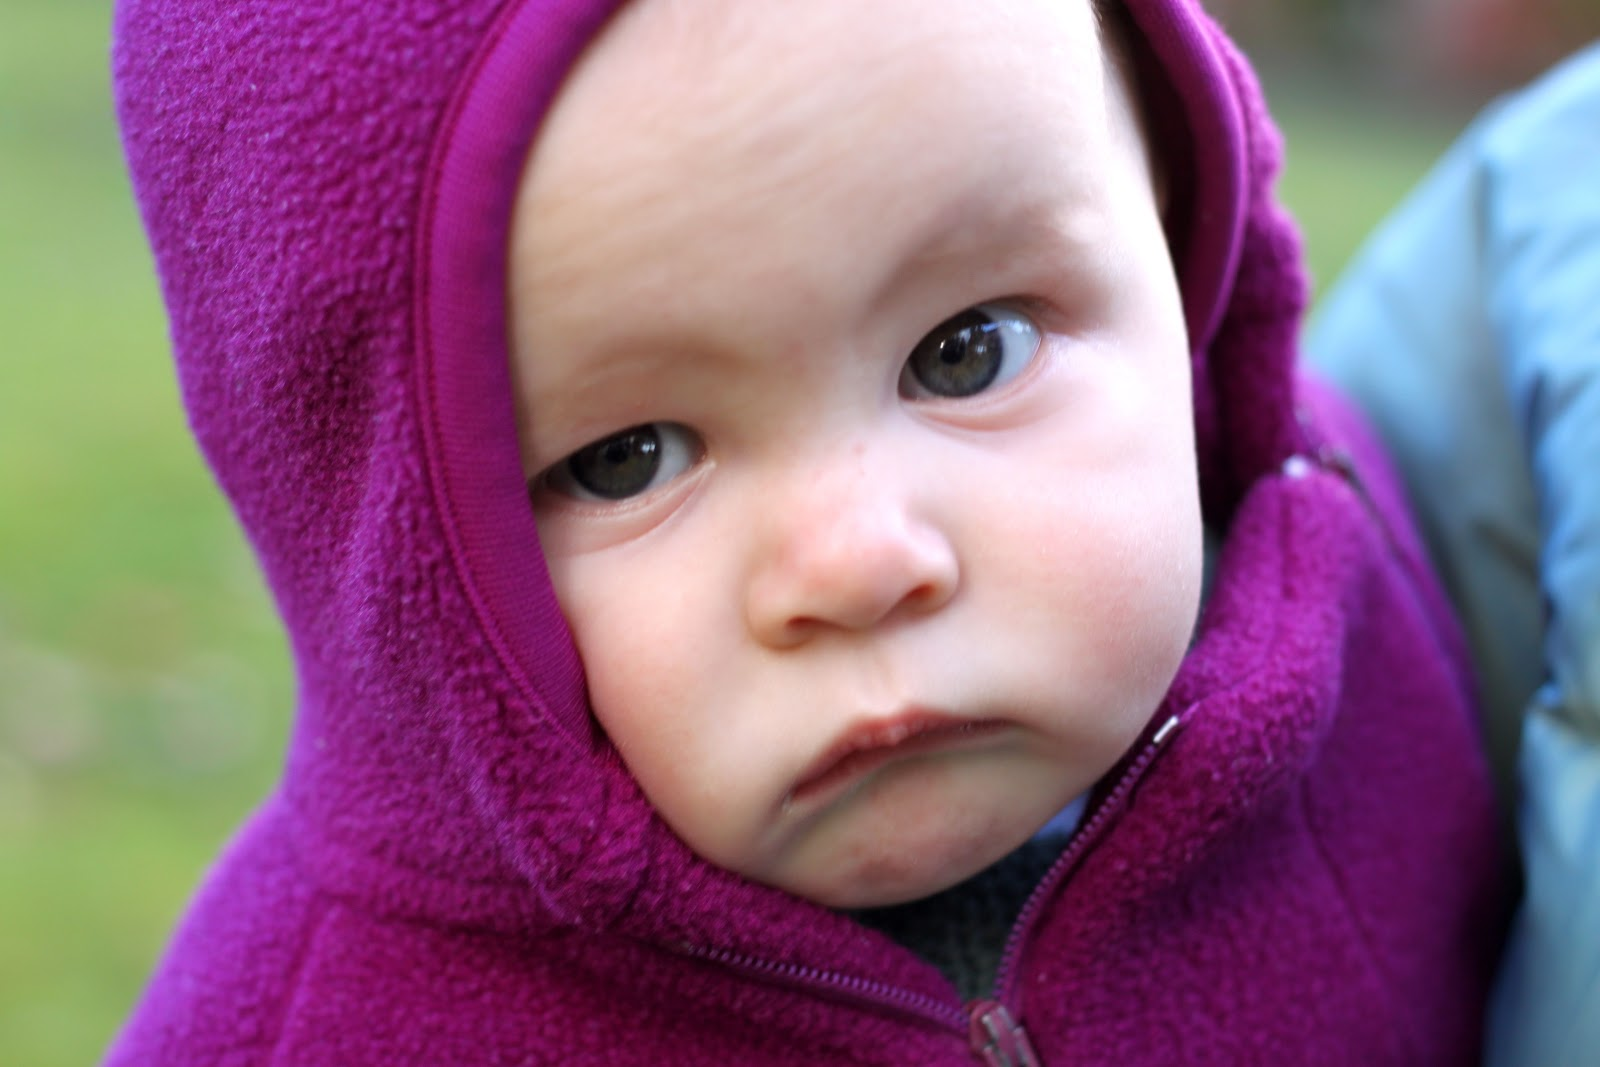 Mean baby face images amp pictures becuo